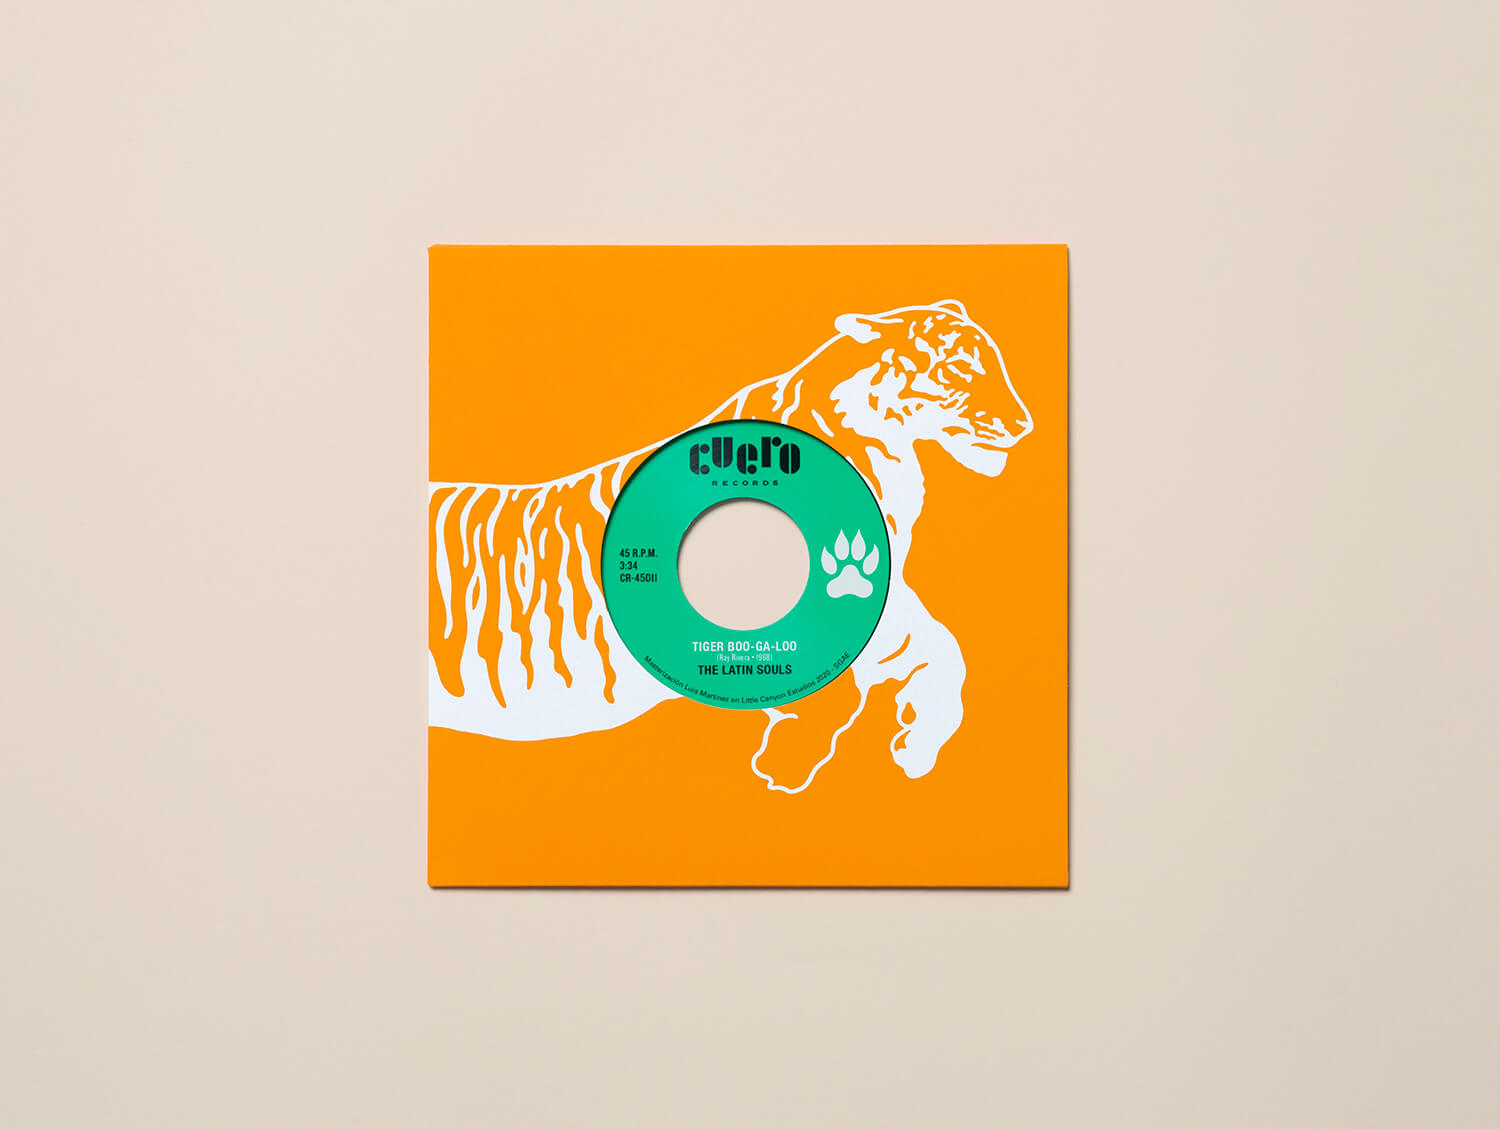 miguel porlan-cuero records-tiger boogaloo-1